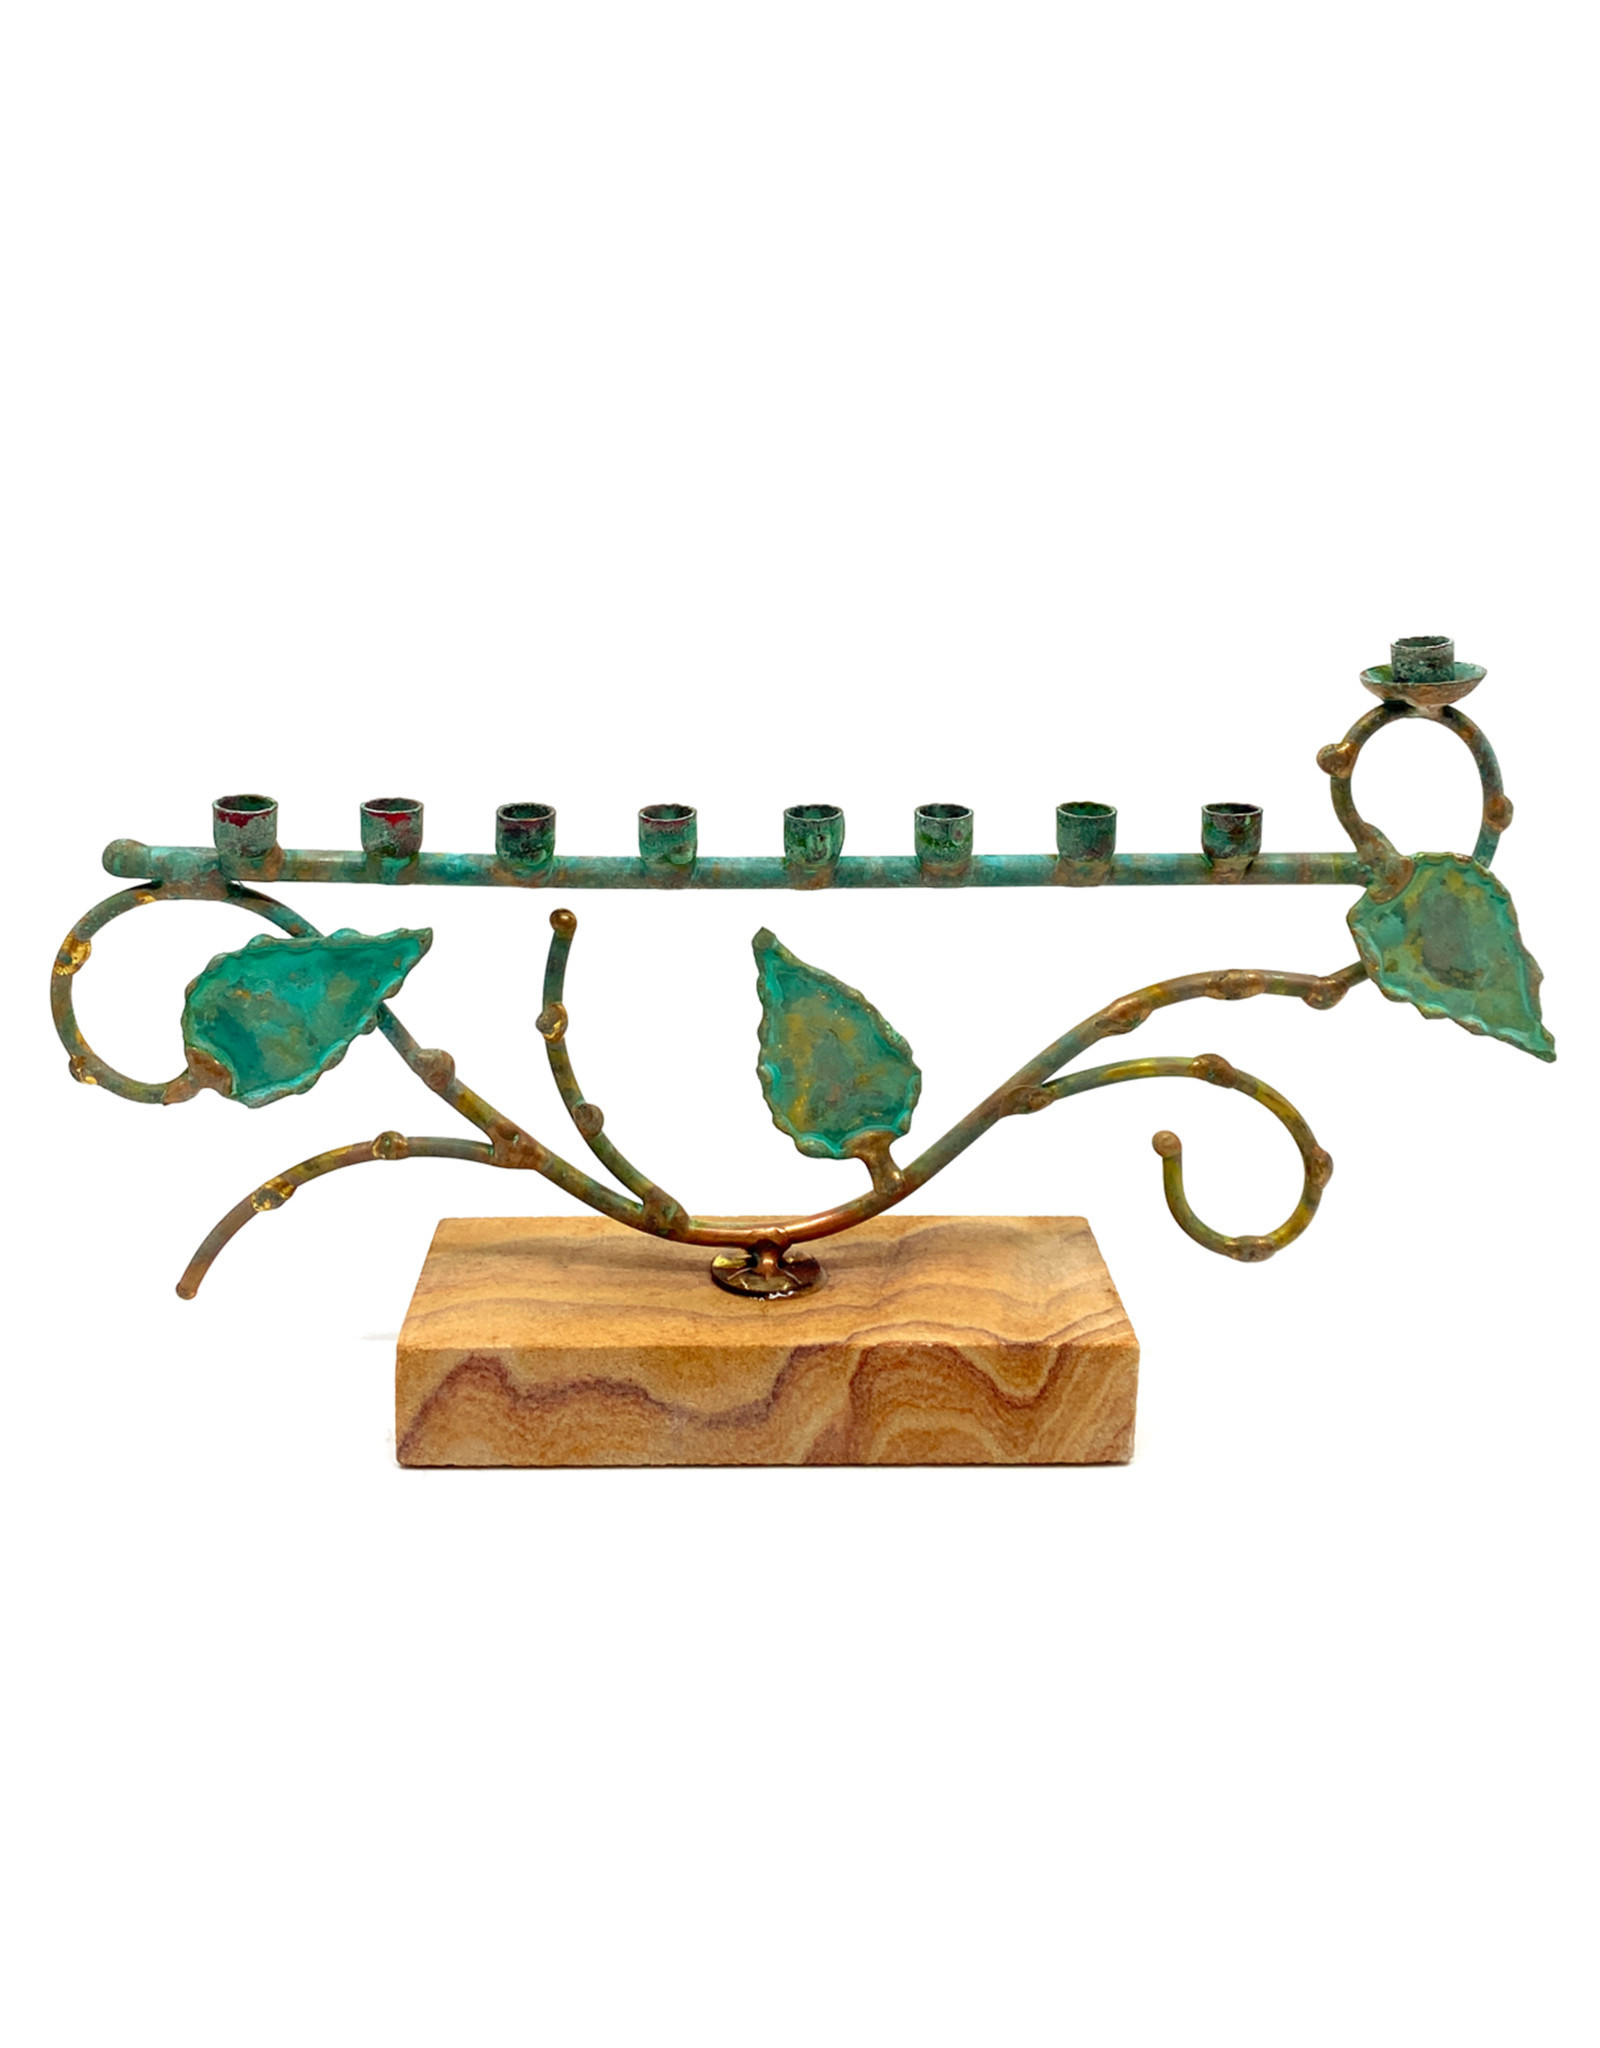 GARY ROSENTHAL COLLECTION TREE OF LIFE MENORAH